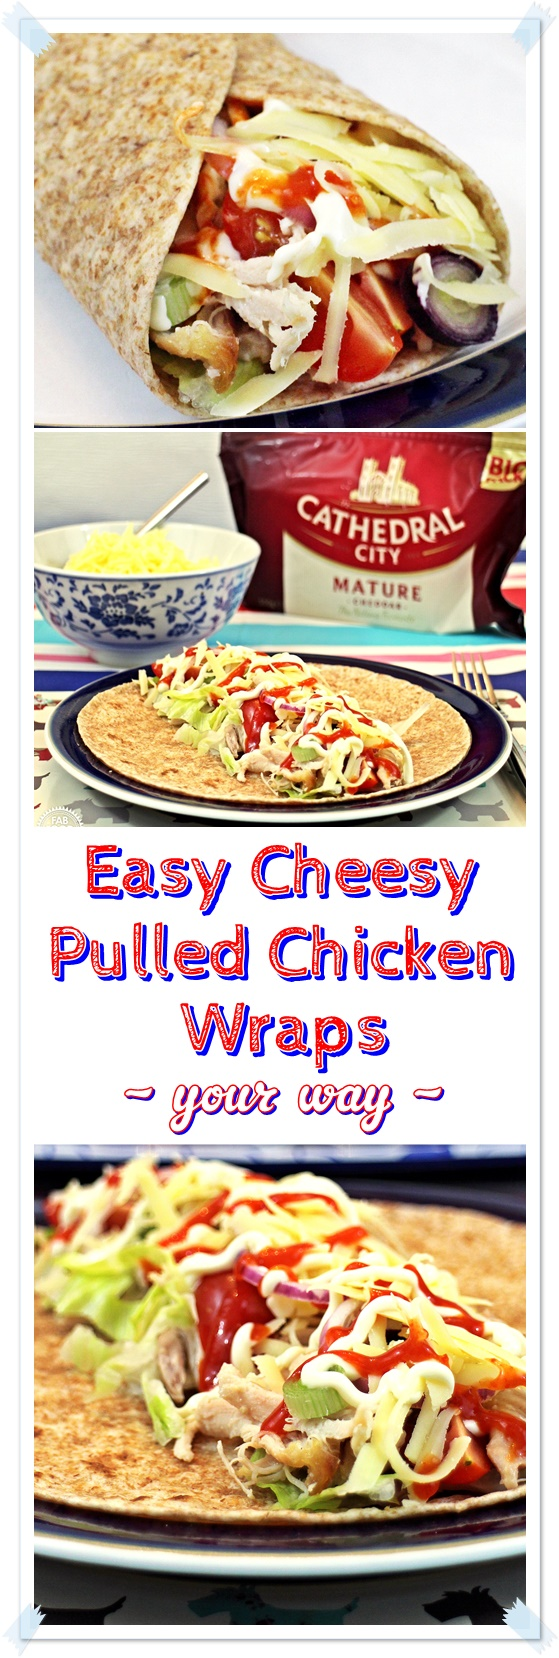 Easy Cheesy Pulled Chicken Wraps - your way! #CheeseRules #LoveCheese Fab Food 4 All